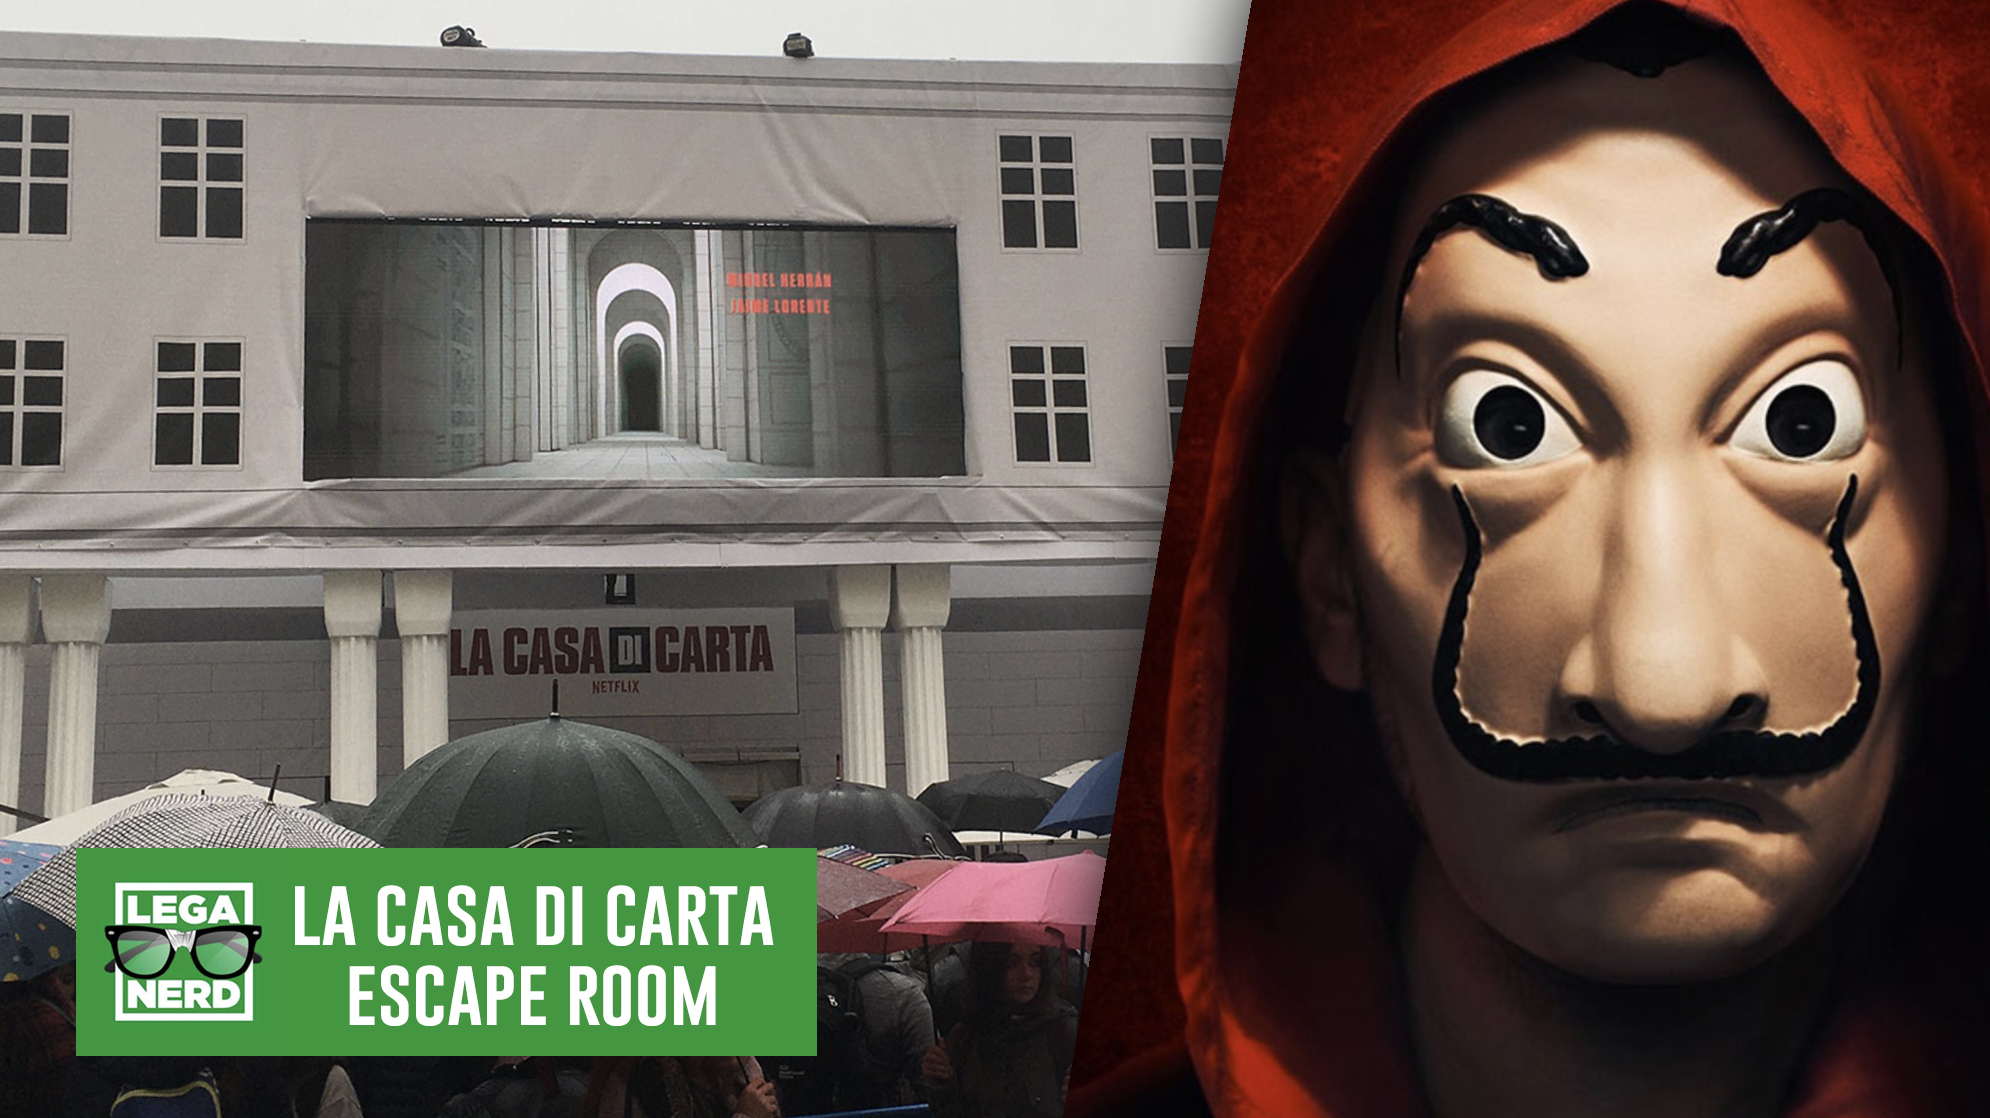 La Casa di Carta: La Escape Room a Lucca Comics & Games 2019